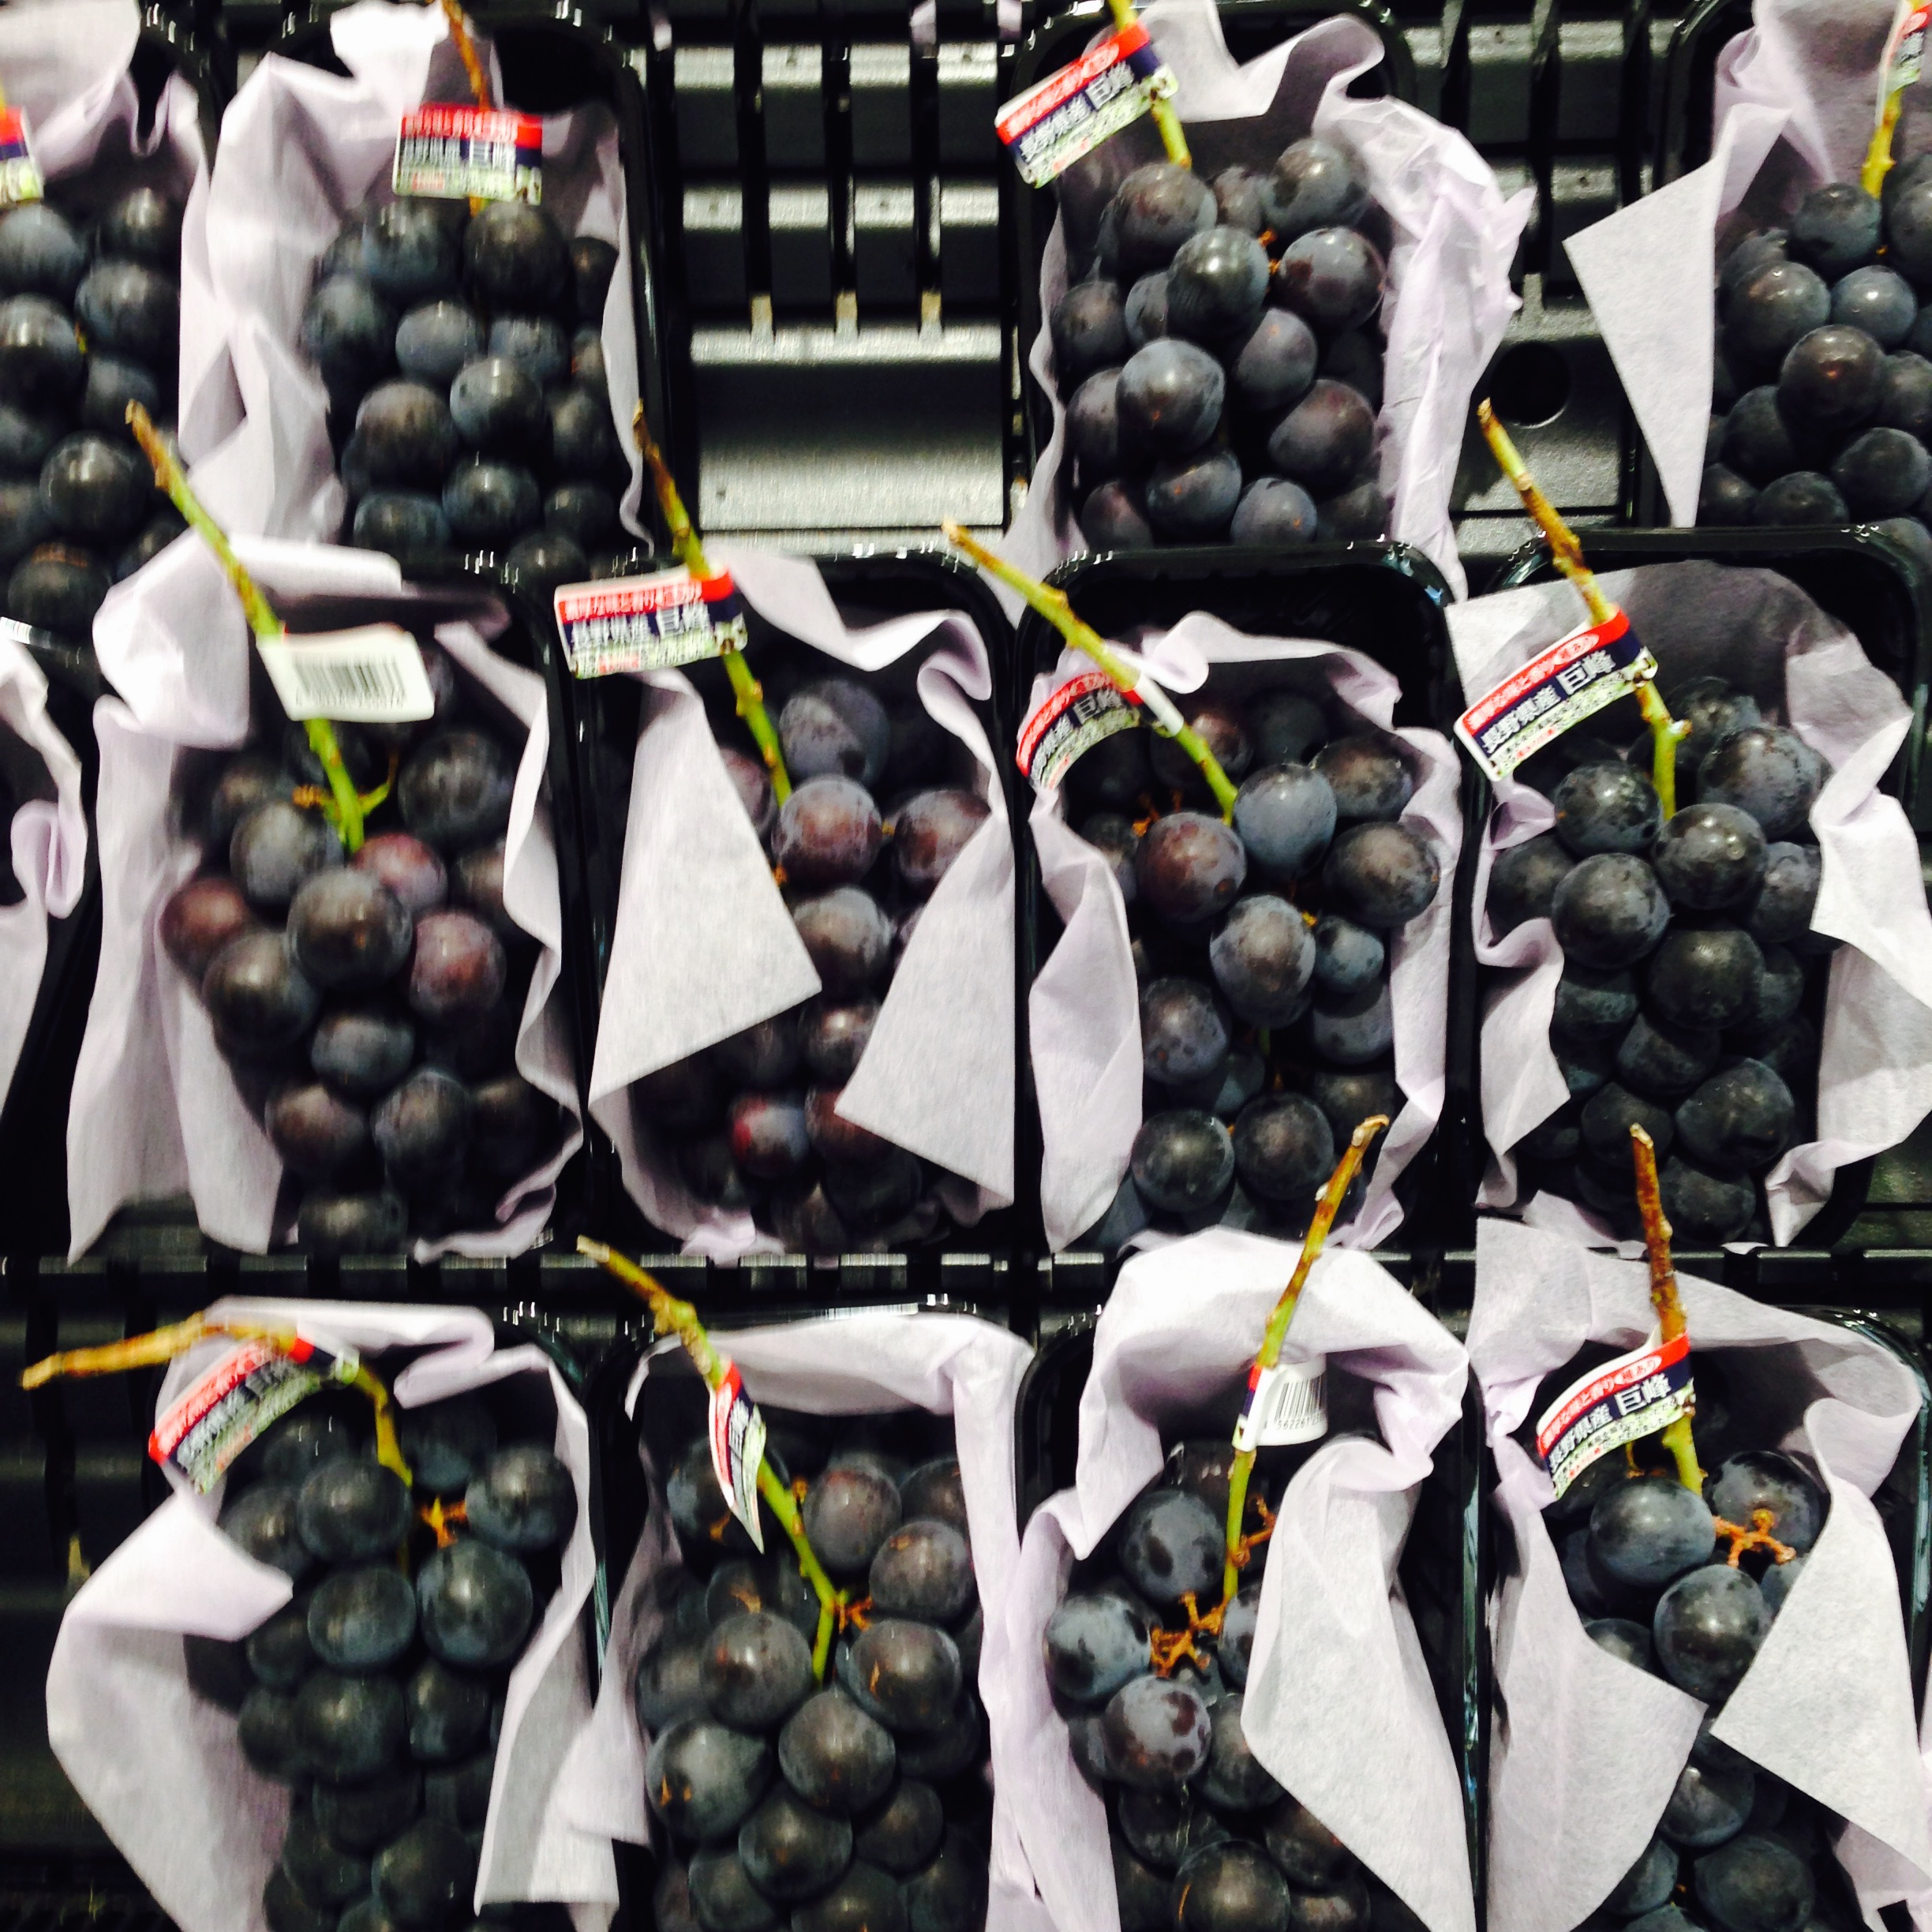 Have you ever seen such perfect grapes?